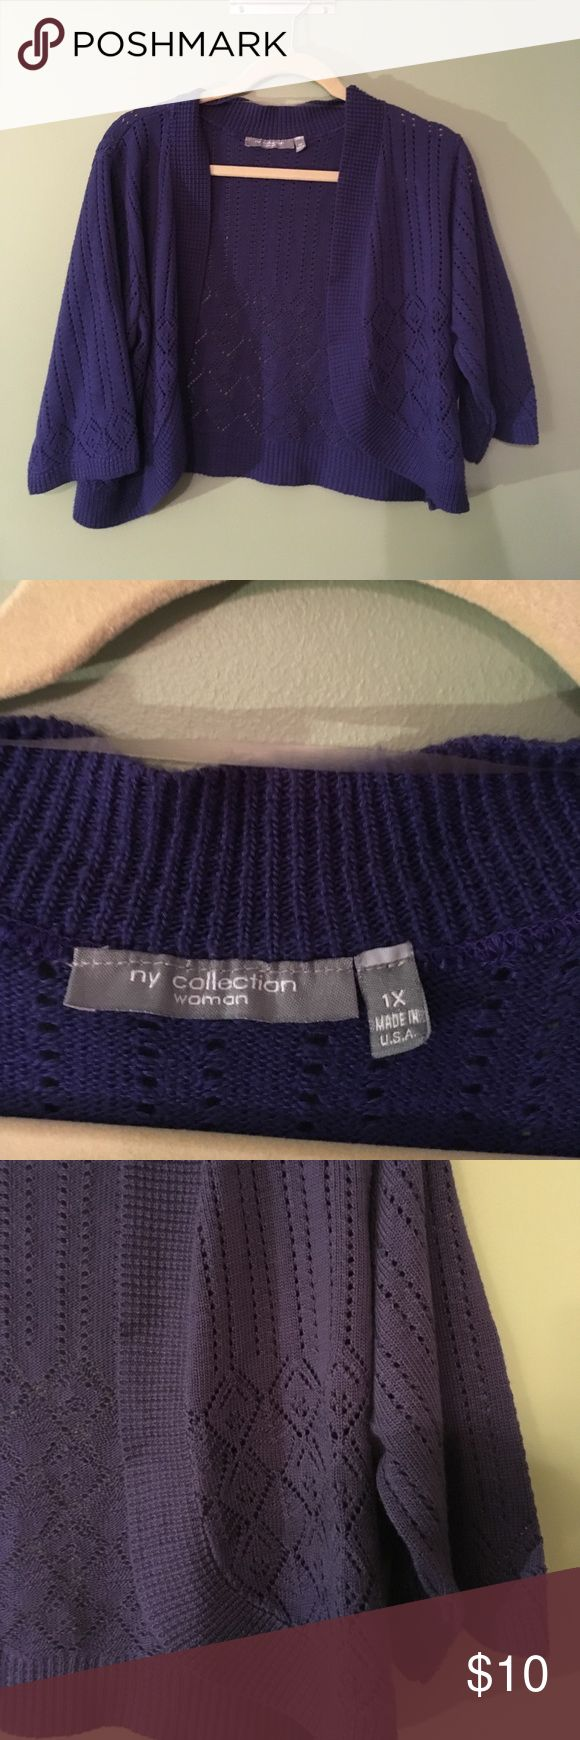 NY Collection size 1X purple shrug NY collection size 1X crochet purple shrug.  This shrug is 18 inches from shoulder seam to the lowest point on the bottom.  This was only worn a few times and is in EUC.  It comes from a smoke free and pet free home. NY Collection Sweaters Shrugs & Ponchos